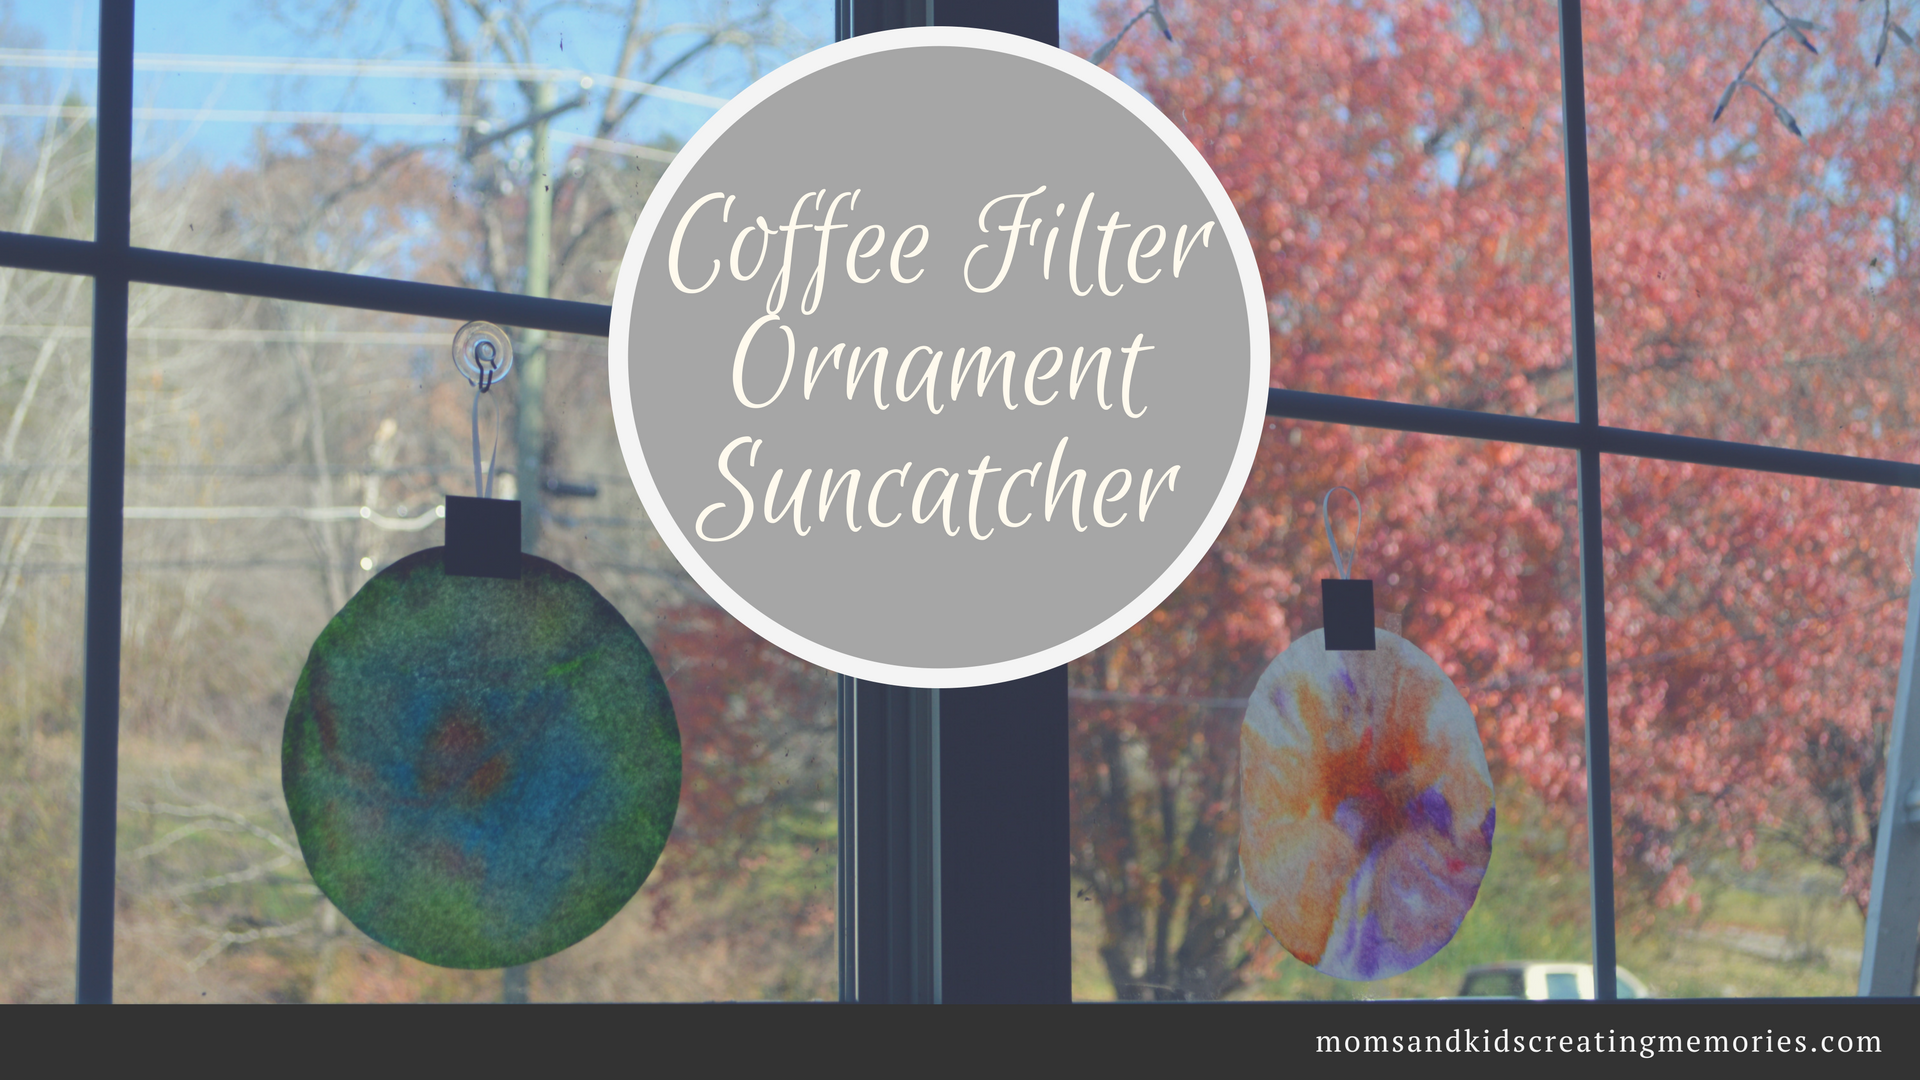 Coffee Filter Suncatcher Ornament - A fun and easy Christmas craft to do with you kids and you probably already have all the supplies you need already in your house. Hope you enjoy and create some memories with your kids!